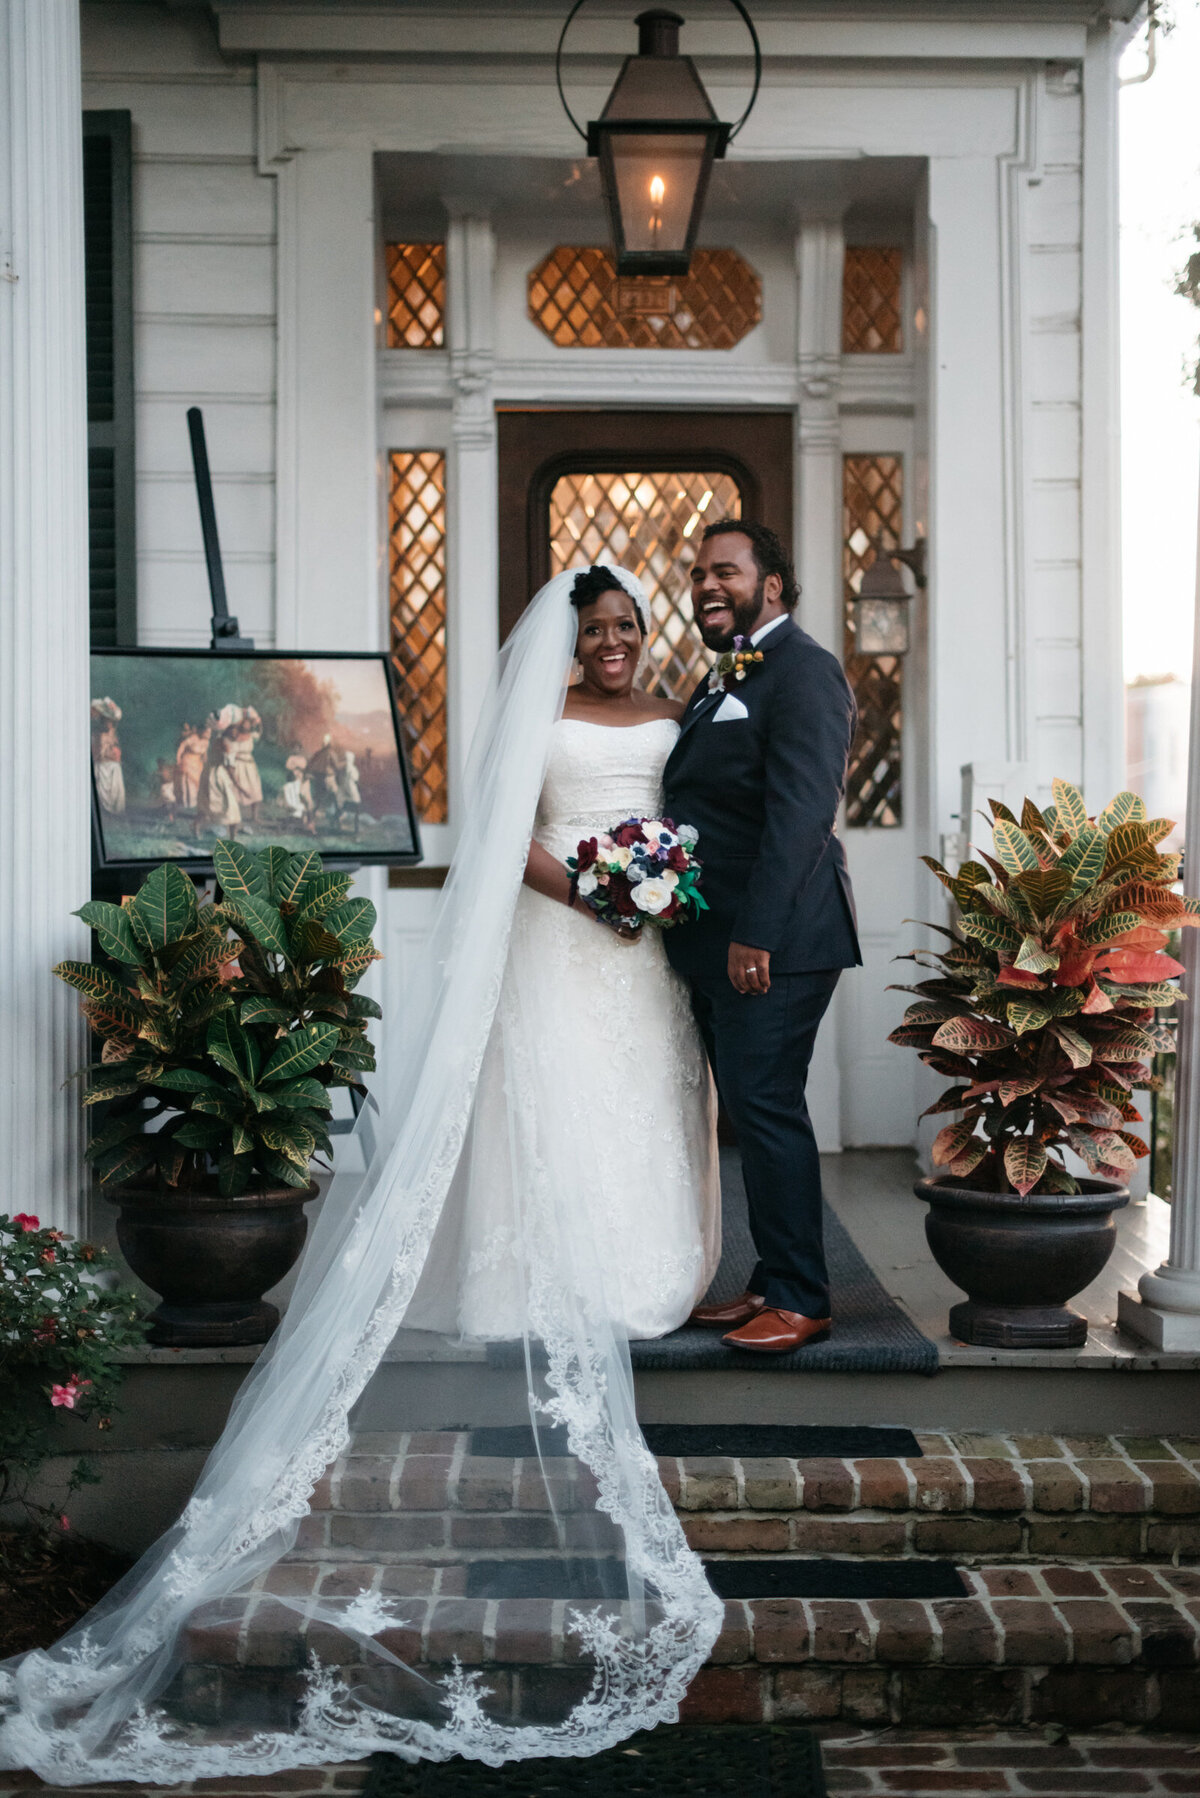 CourtneyDanny-New-Orleans-Wedding-399